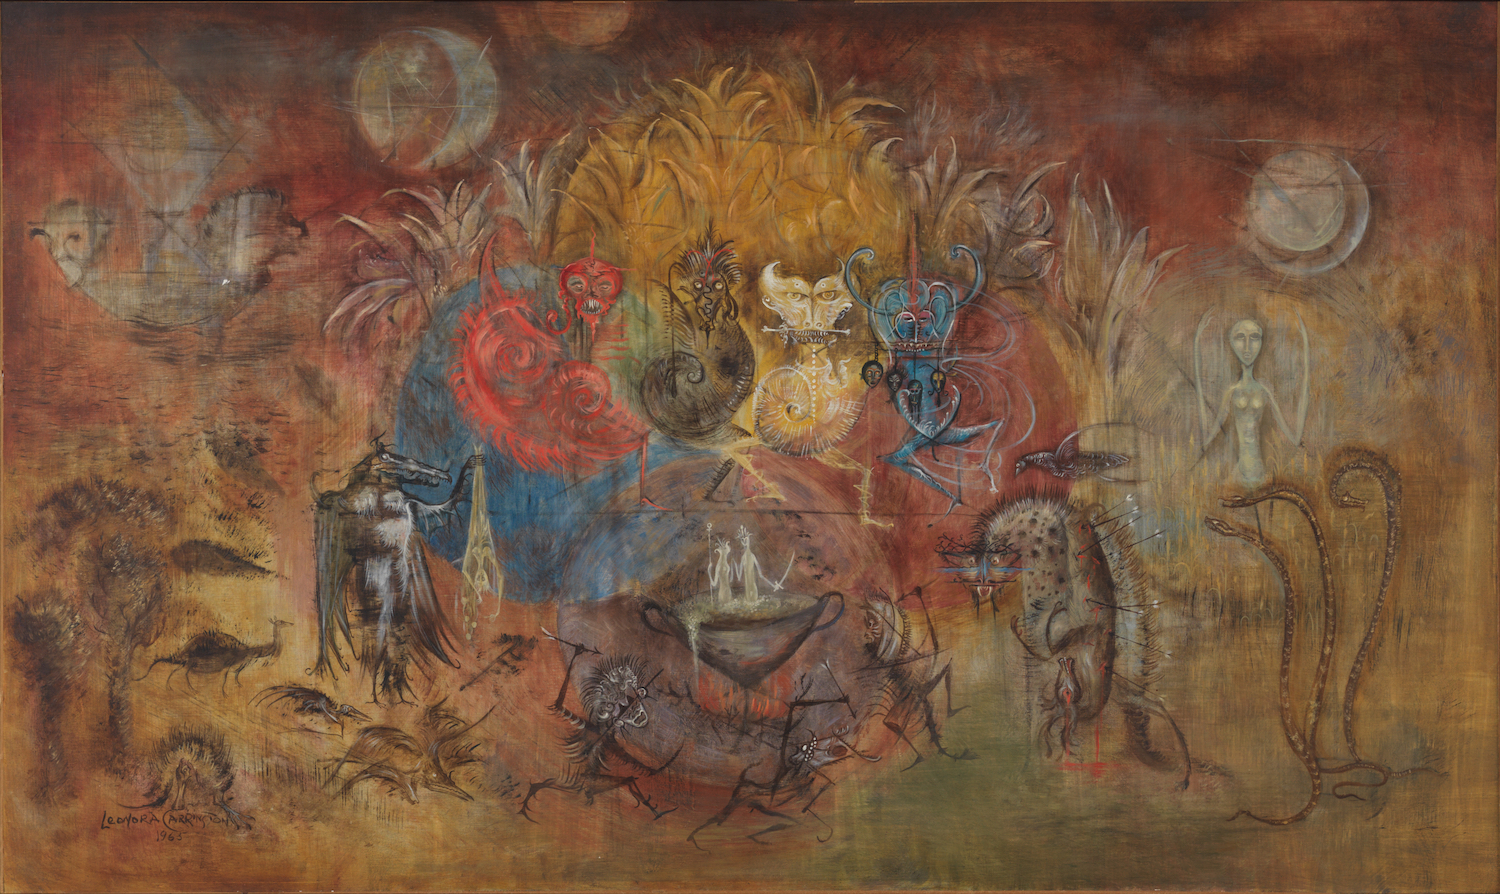 "LEONORA CARRINGTON, UNTITLED [PRELIMINARY SKETCHES FOR THE PLAY OPUS SINIESTRUS], 1965, OIL ON CANVAS, 34 3/5″ X 58 7/10″. SIGNED AND DATED L.L. ""LEONORA CARRINGTON 1965."" © 2019 ESTATE OF LEONORA CARRINGTON / ARTISTS RIGHTS SOCIETY (ARS), NEW YORK. COURTESY OF GALLERY WENDI NORRIS."